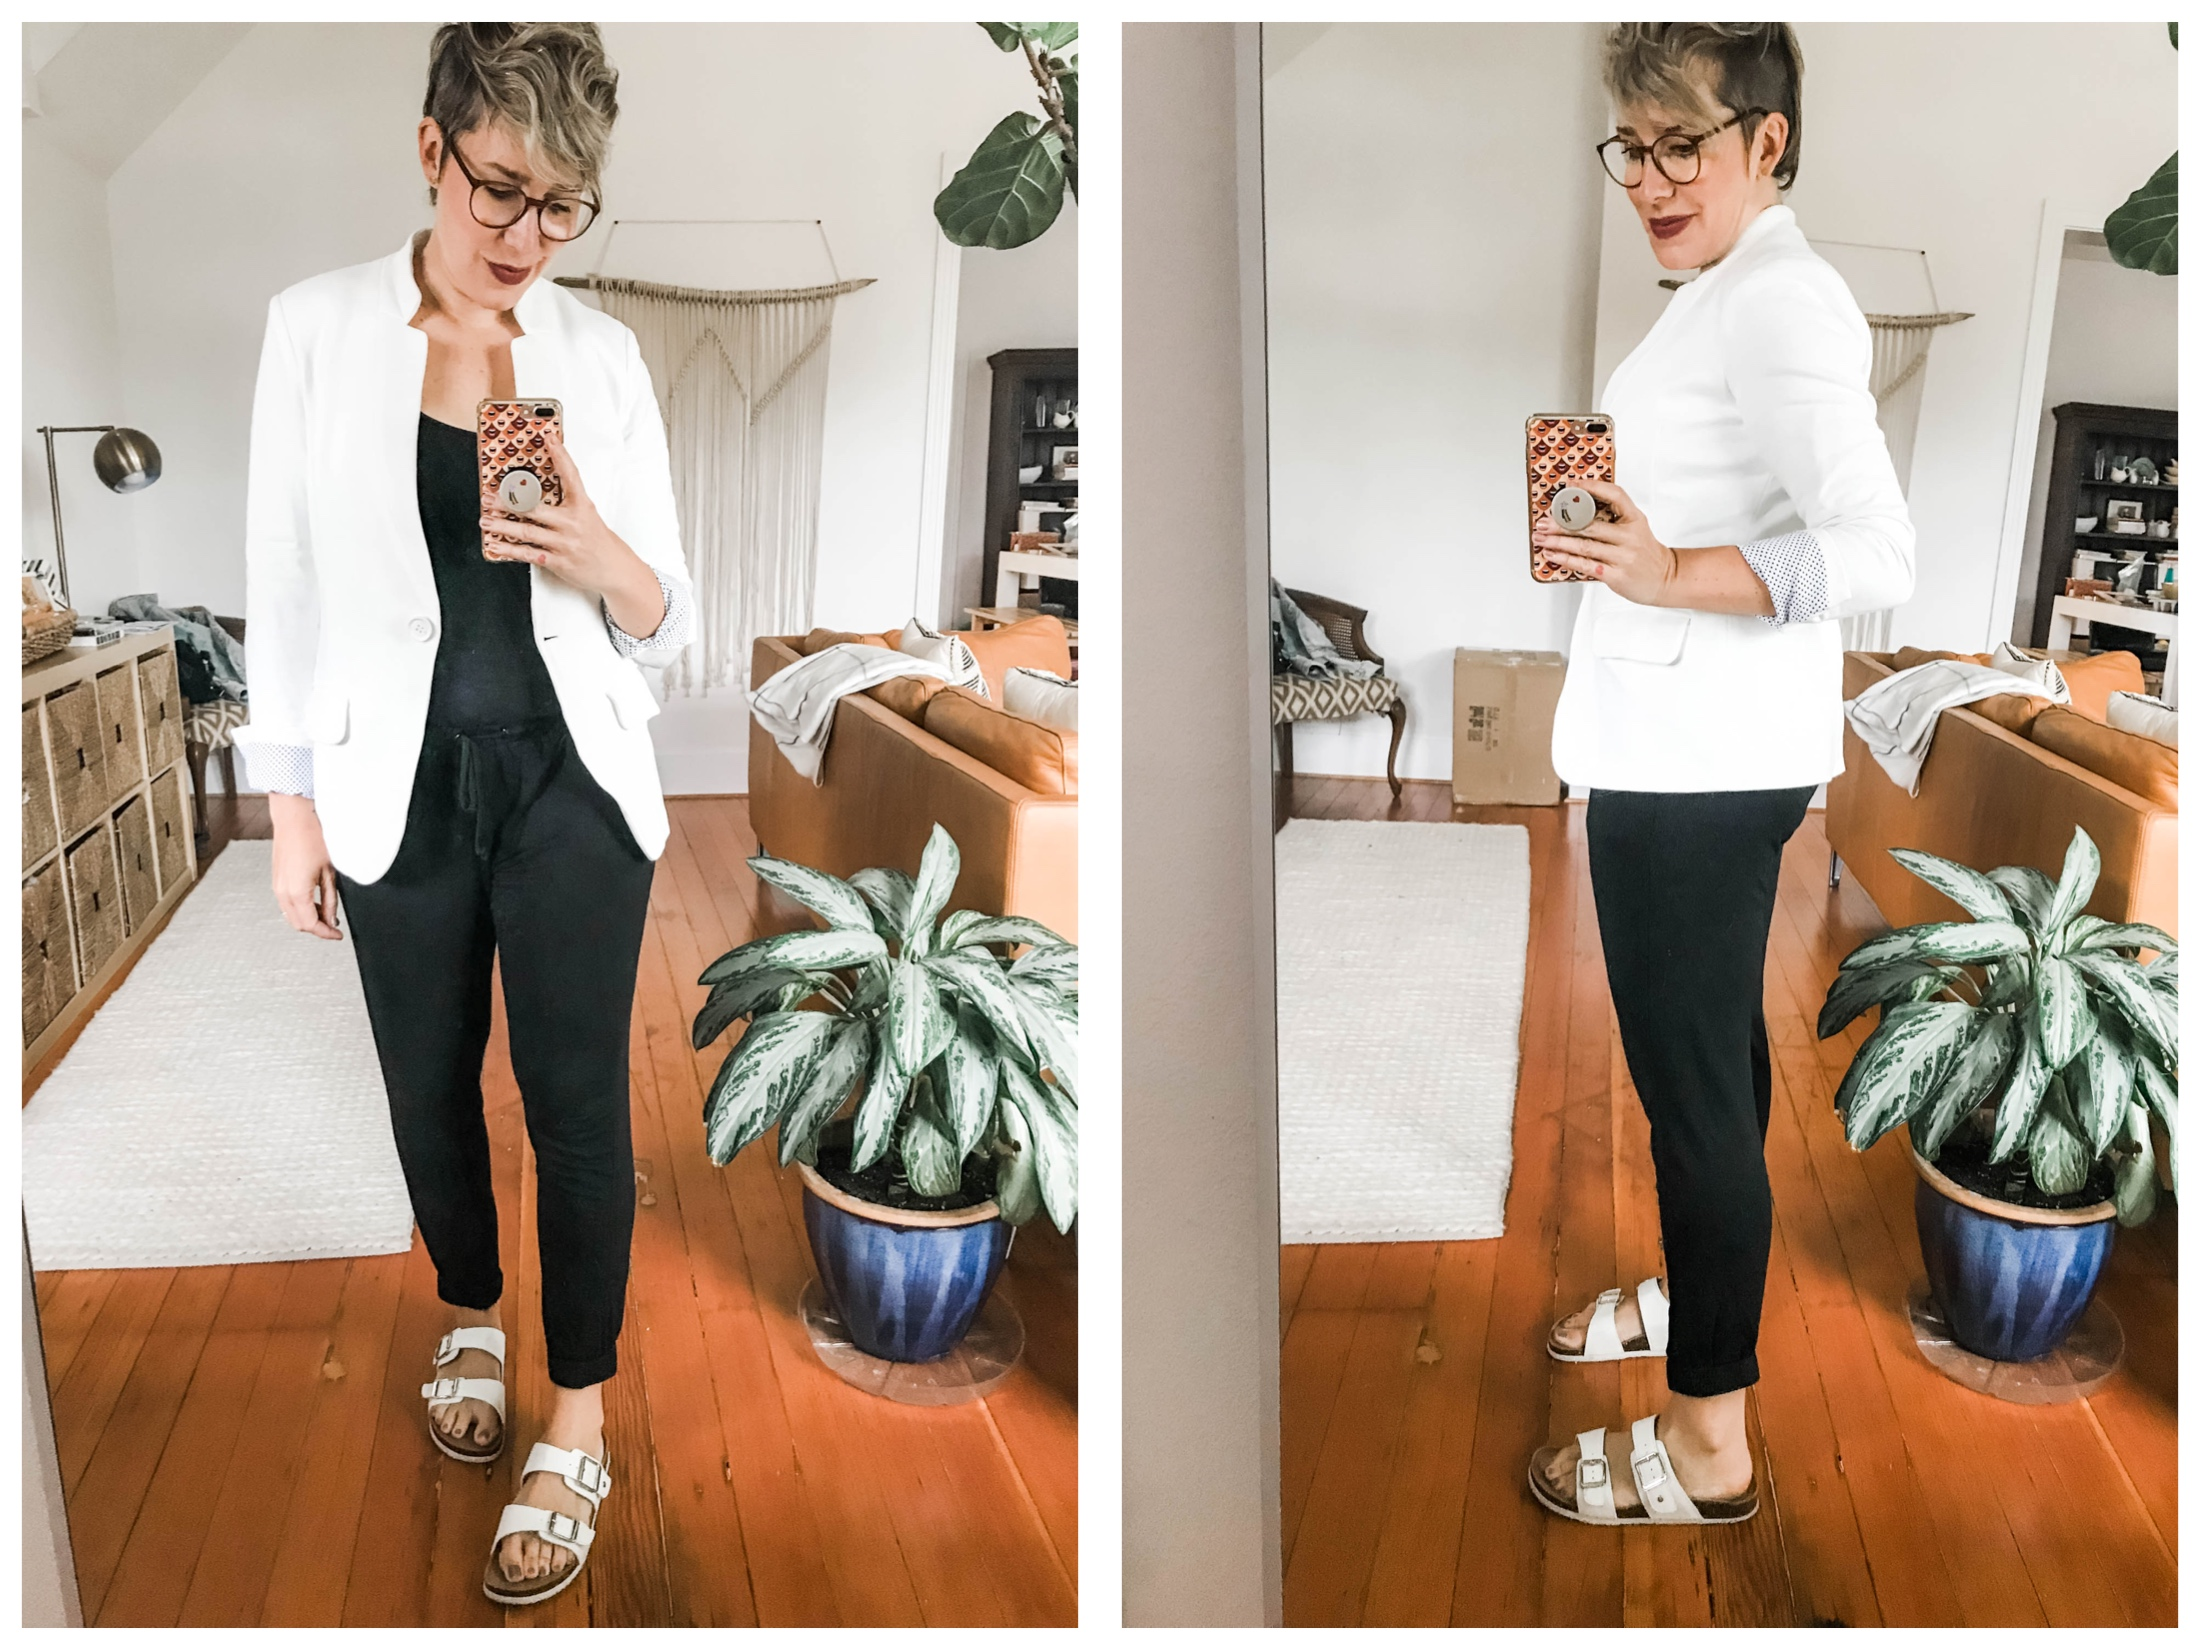 White blazers are quickly becoming our go-to casual outfit upgrade. For summer, we're styling it with denim & neutrals — check it out.